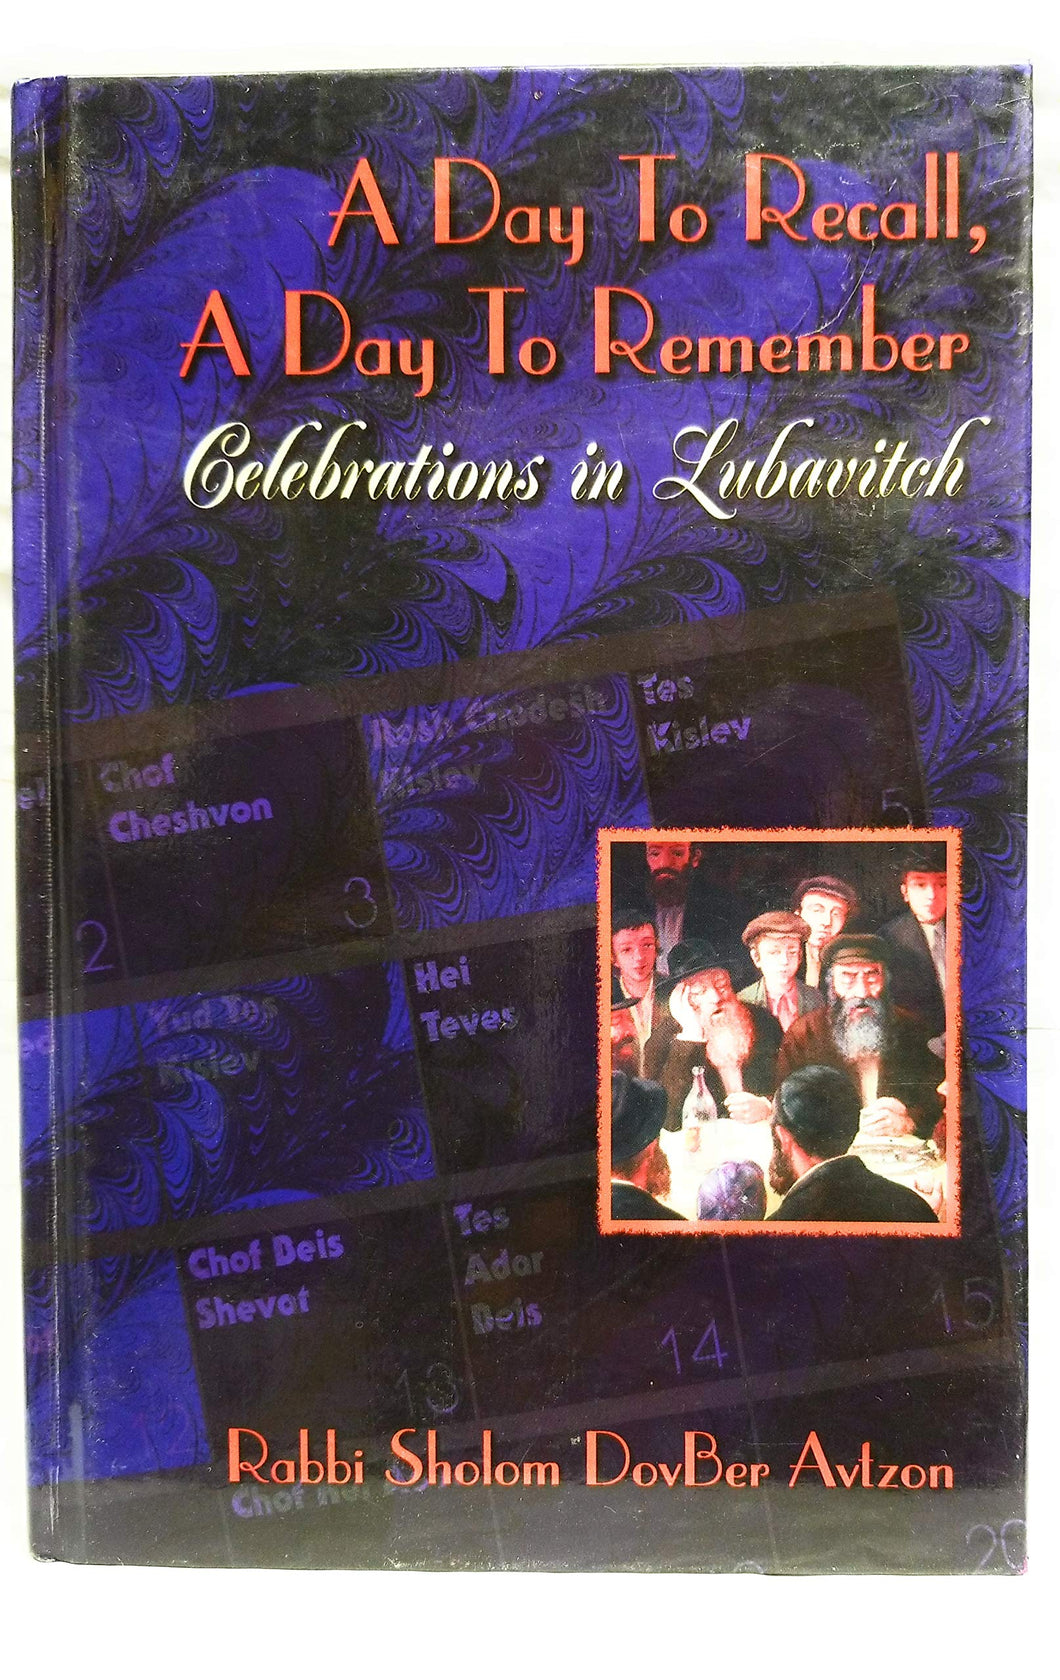 A Day to Recall, A Day to Remember - Celebrations in Lubavitch (5067288608903)